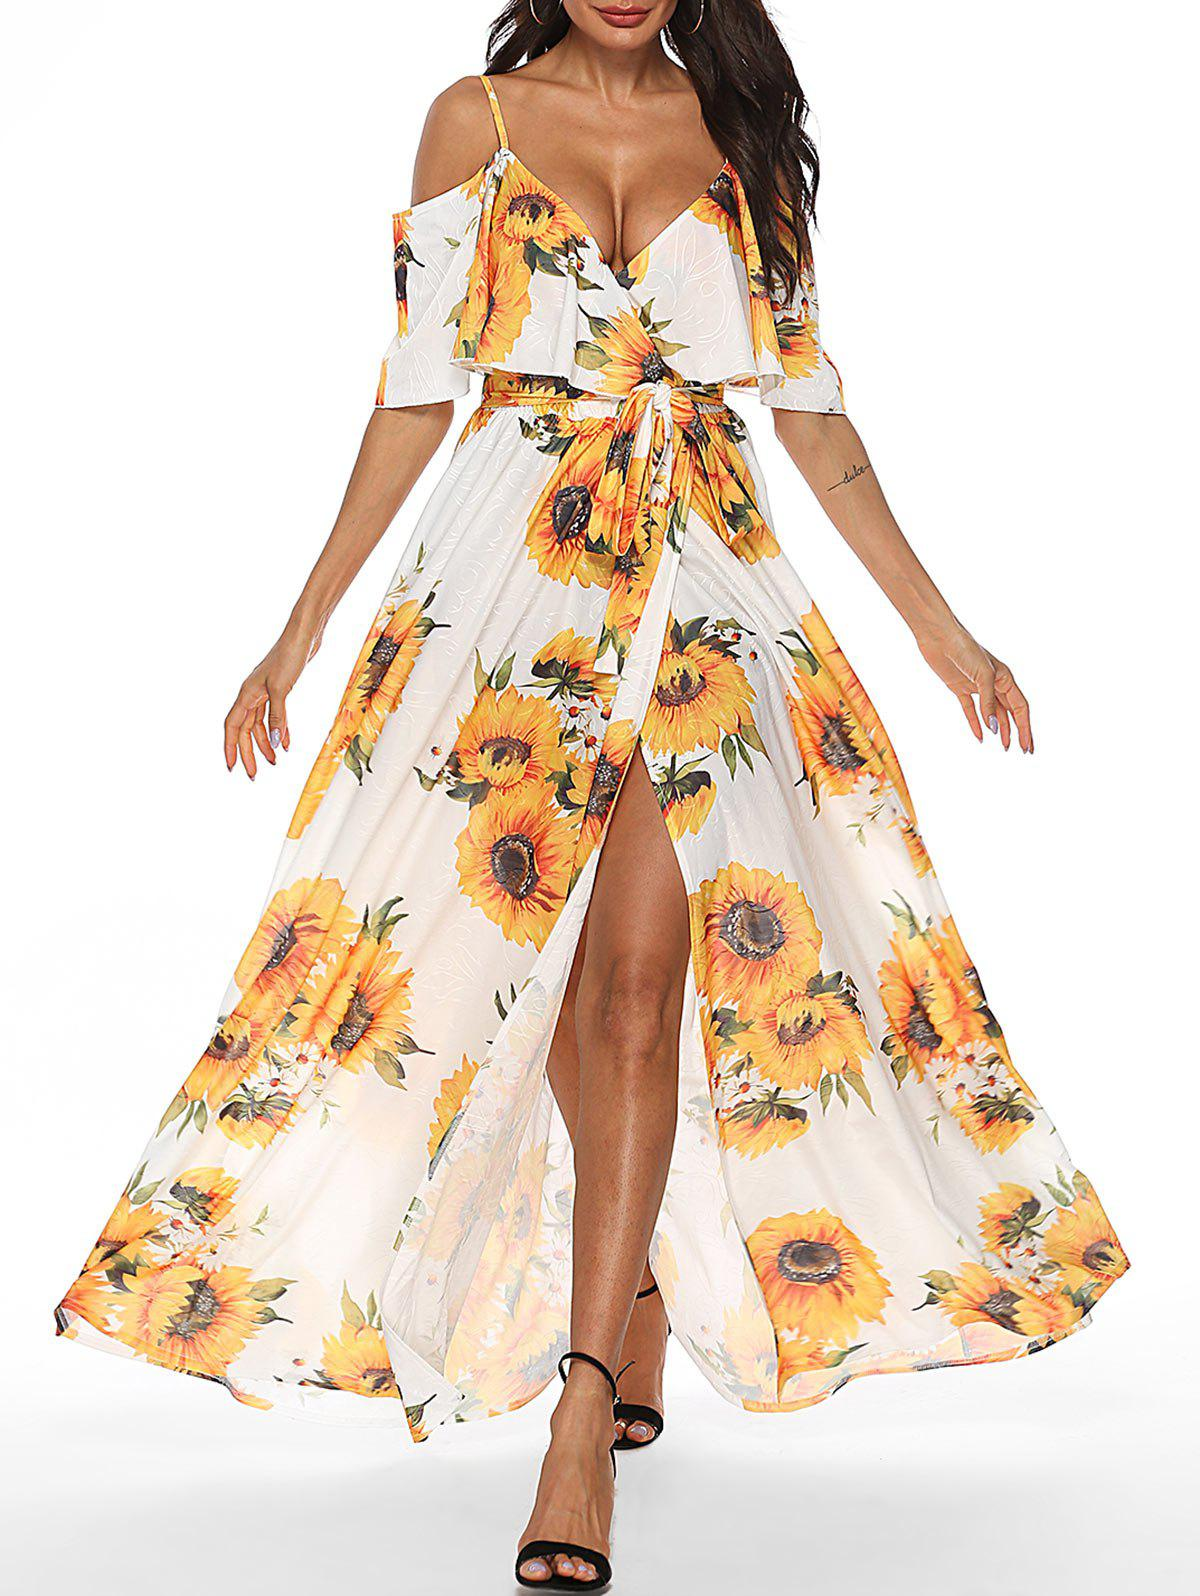 Sunflower Cold Shoulder Slit Maxi Dress - multicolor 2XL